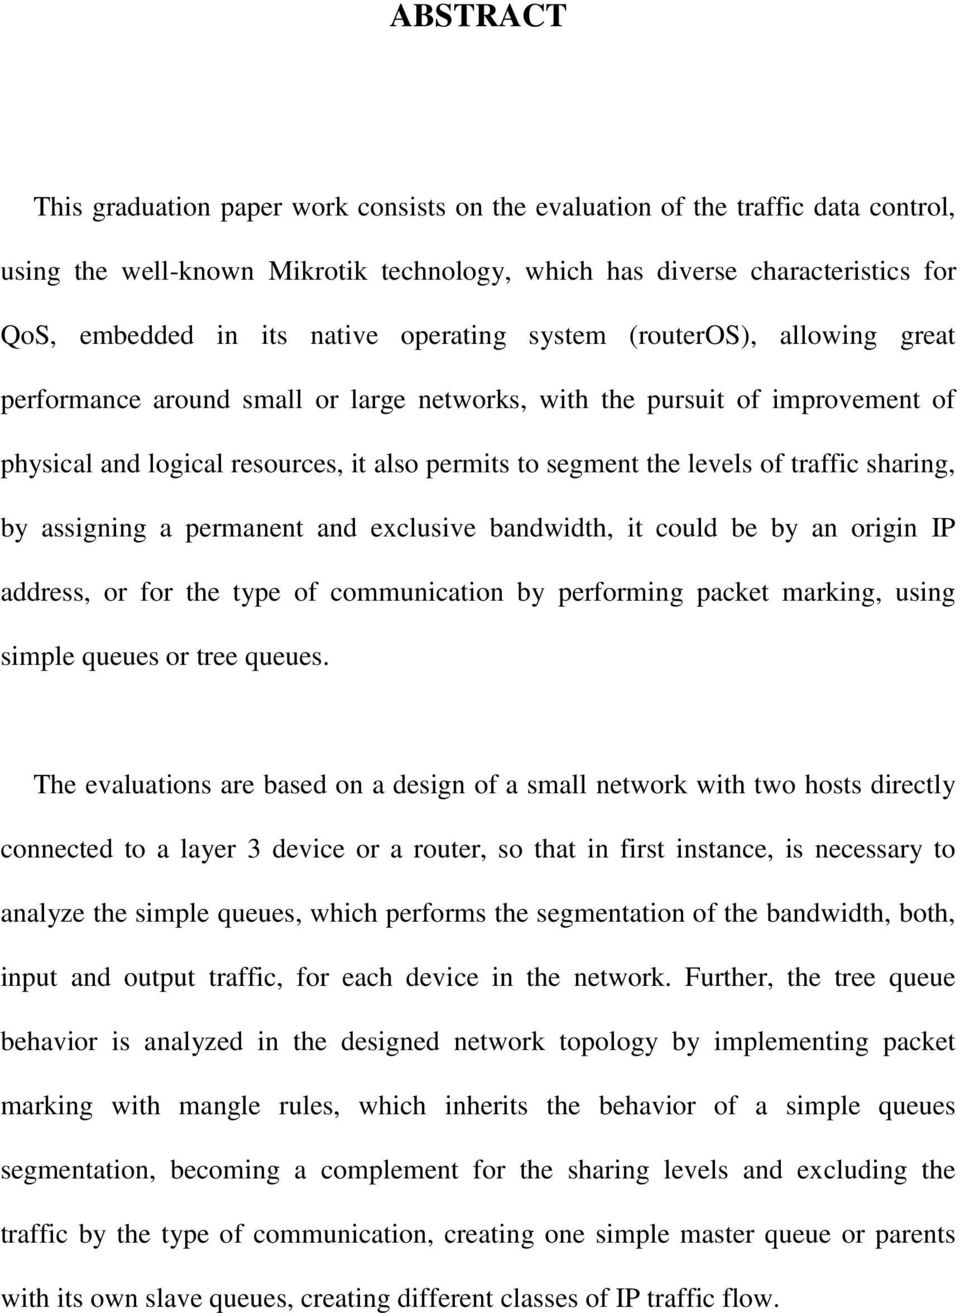 traffic sharing, by assigning a permanent and exclusive bandwidth, it could be by an origin IP address, or for the type of communication by performing packet marking, using simple queues or tree